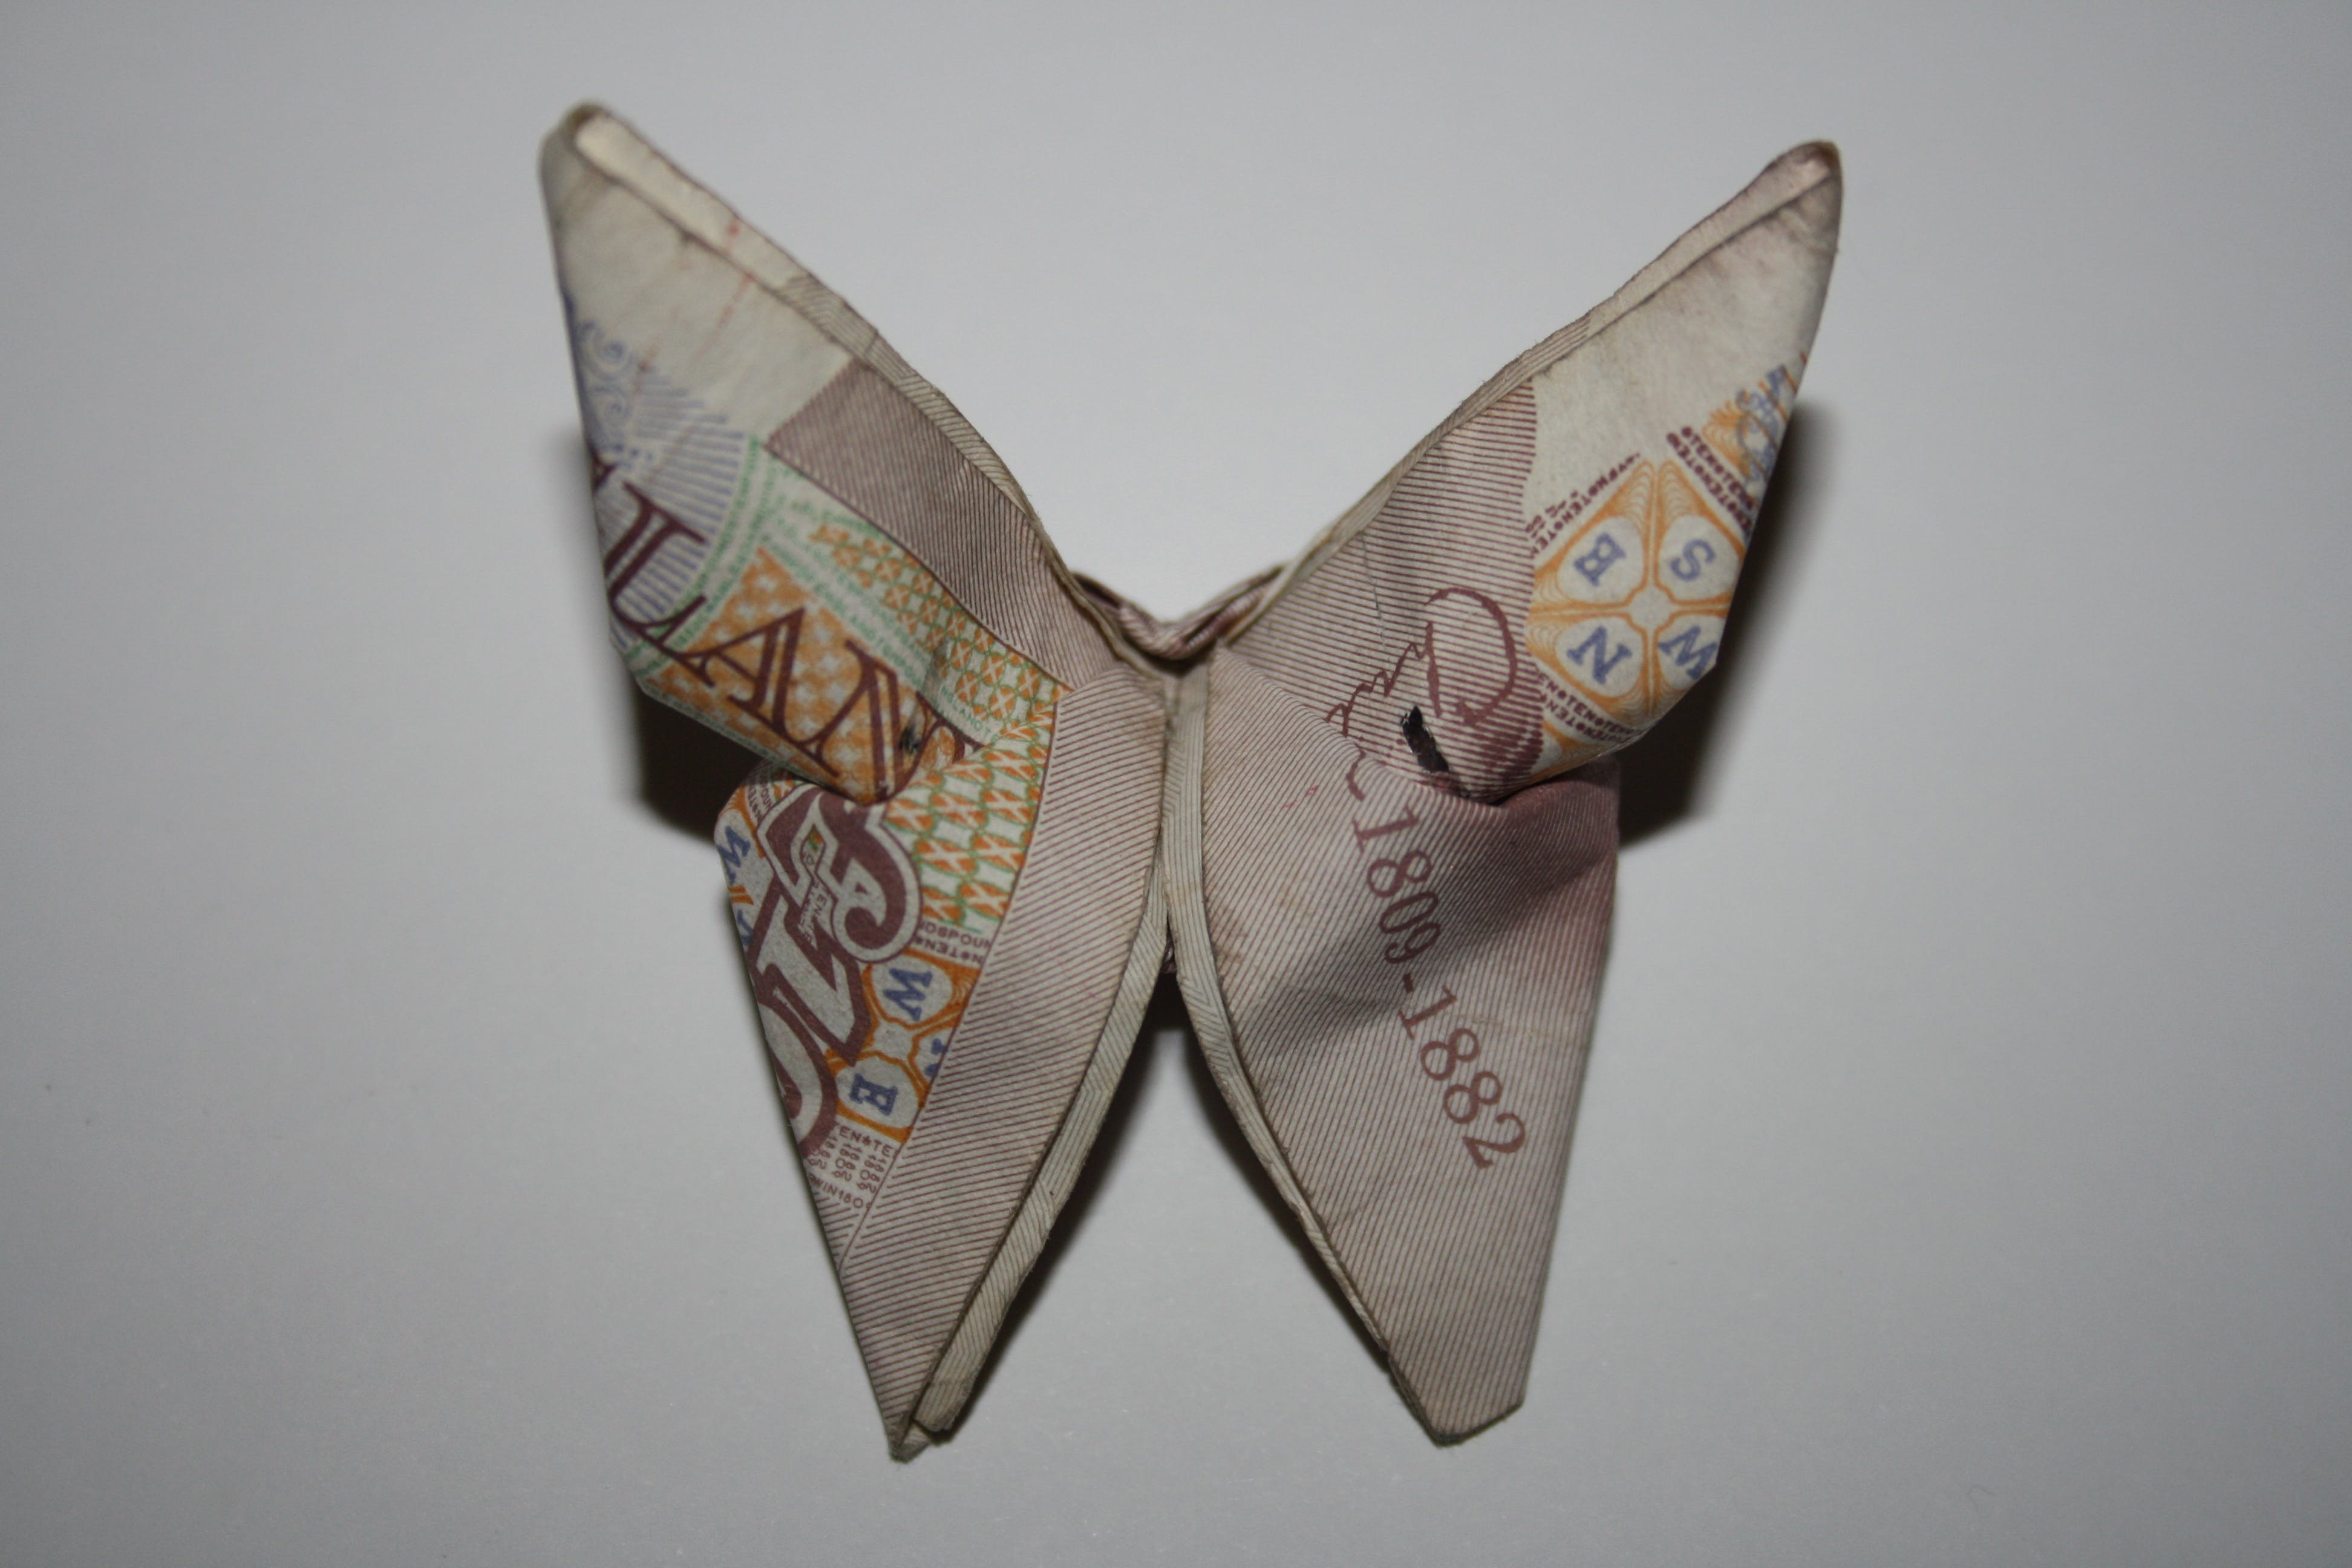 Free stock photo of notes, money, butterfly, finance